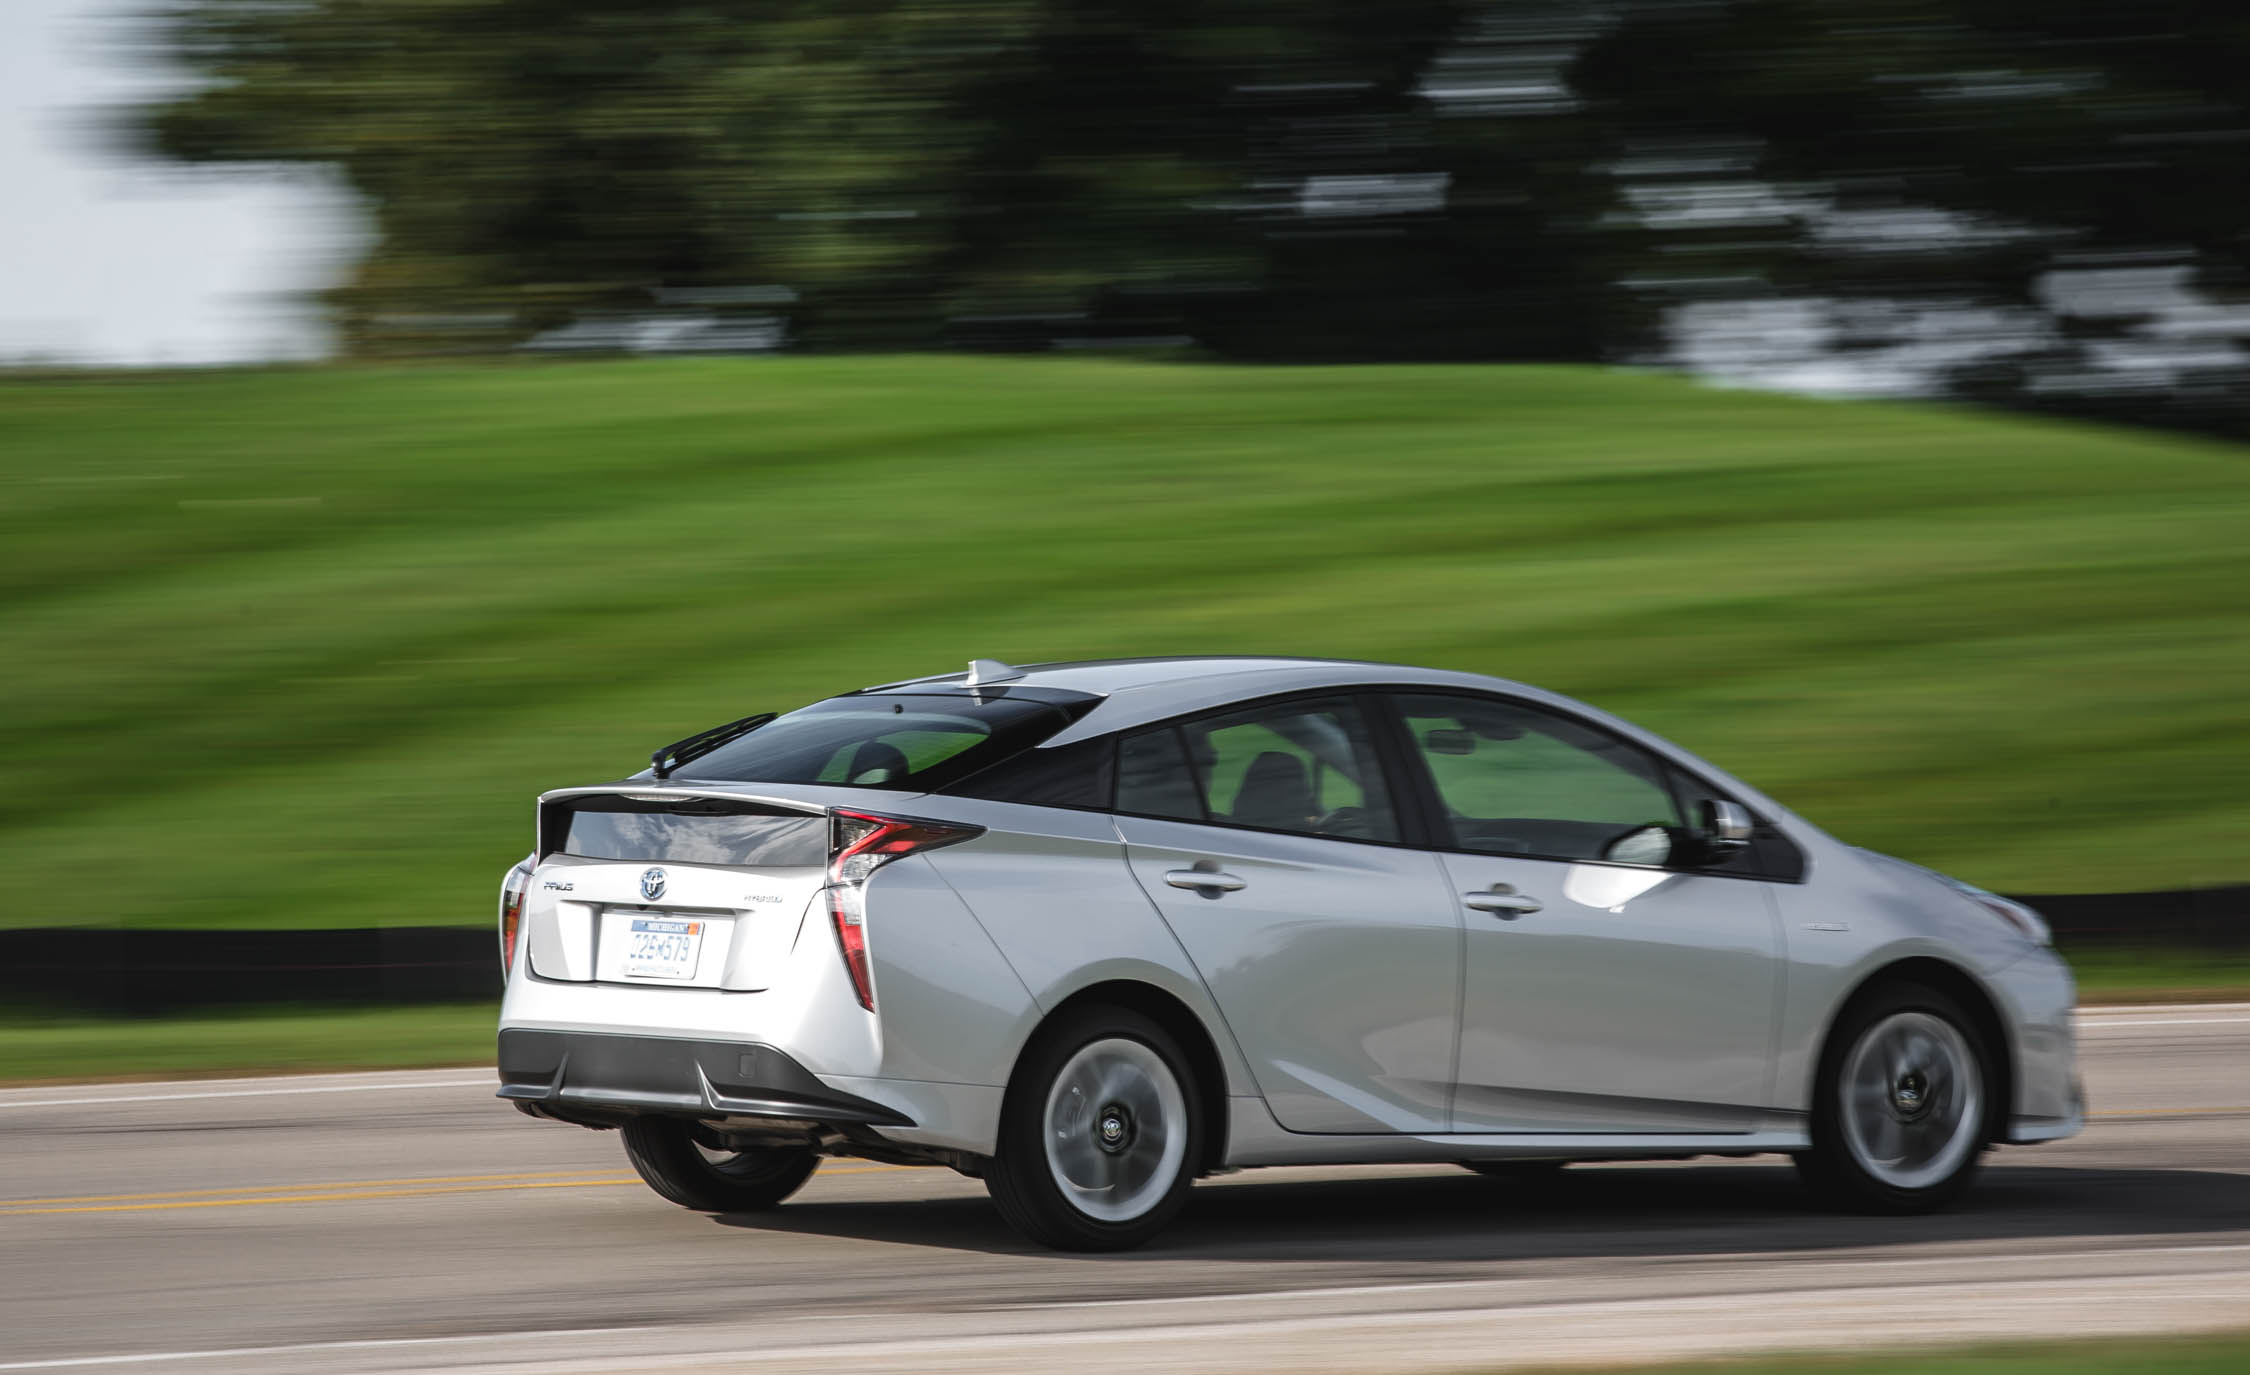 2017 Toyota Prius Test Drive Rear And Side View (Photo 56 of 64)